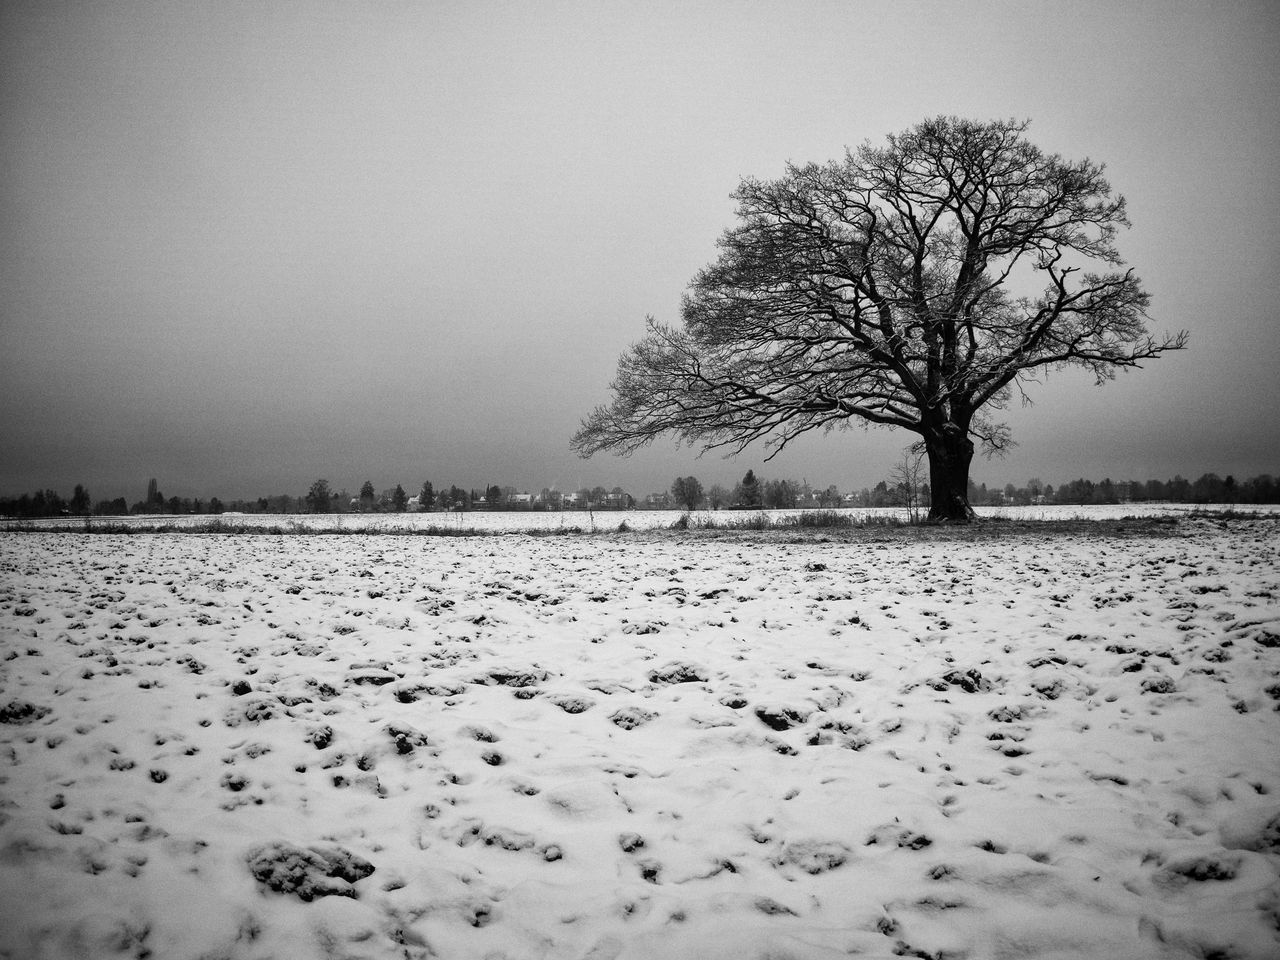 winter, cold temperature, snow, bare tree, tree, tranquility, nature, lone, landscape, weather, beauty in nature, isolated, tranquil scene, branch, scenics, outdoors, clear sky, day, sky, no people